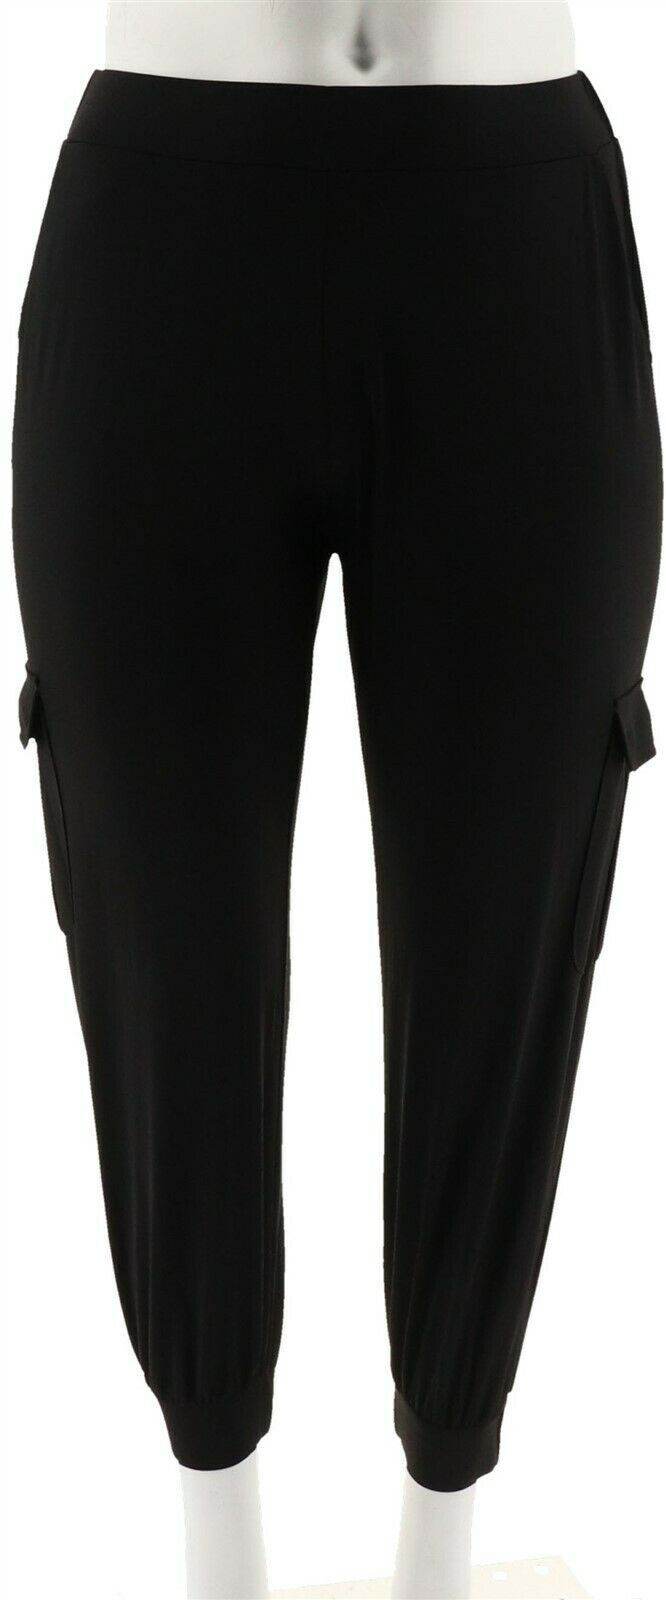 Primary image for Lisa Rinna Collection Petite Banded Bottom Pants Black PXXS NEW A275986